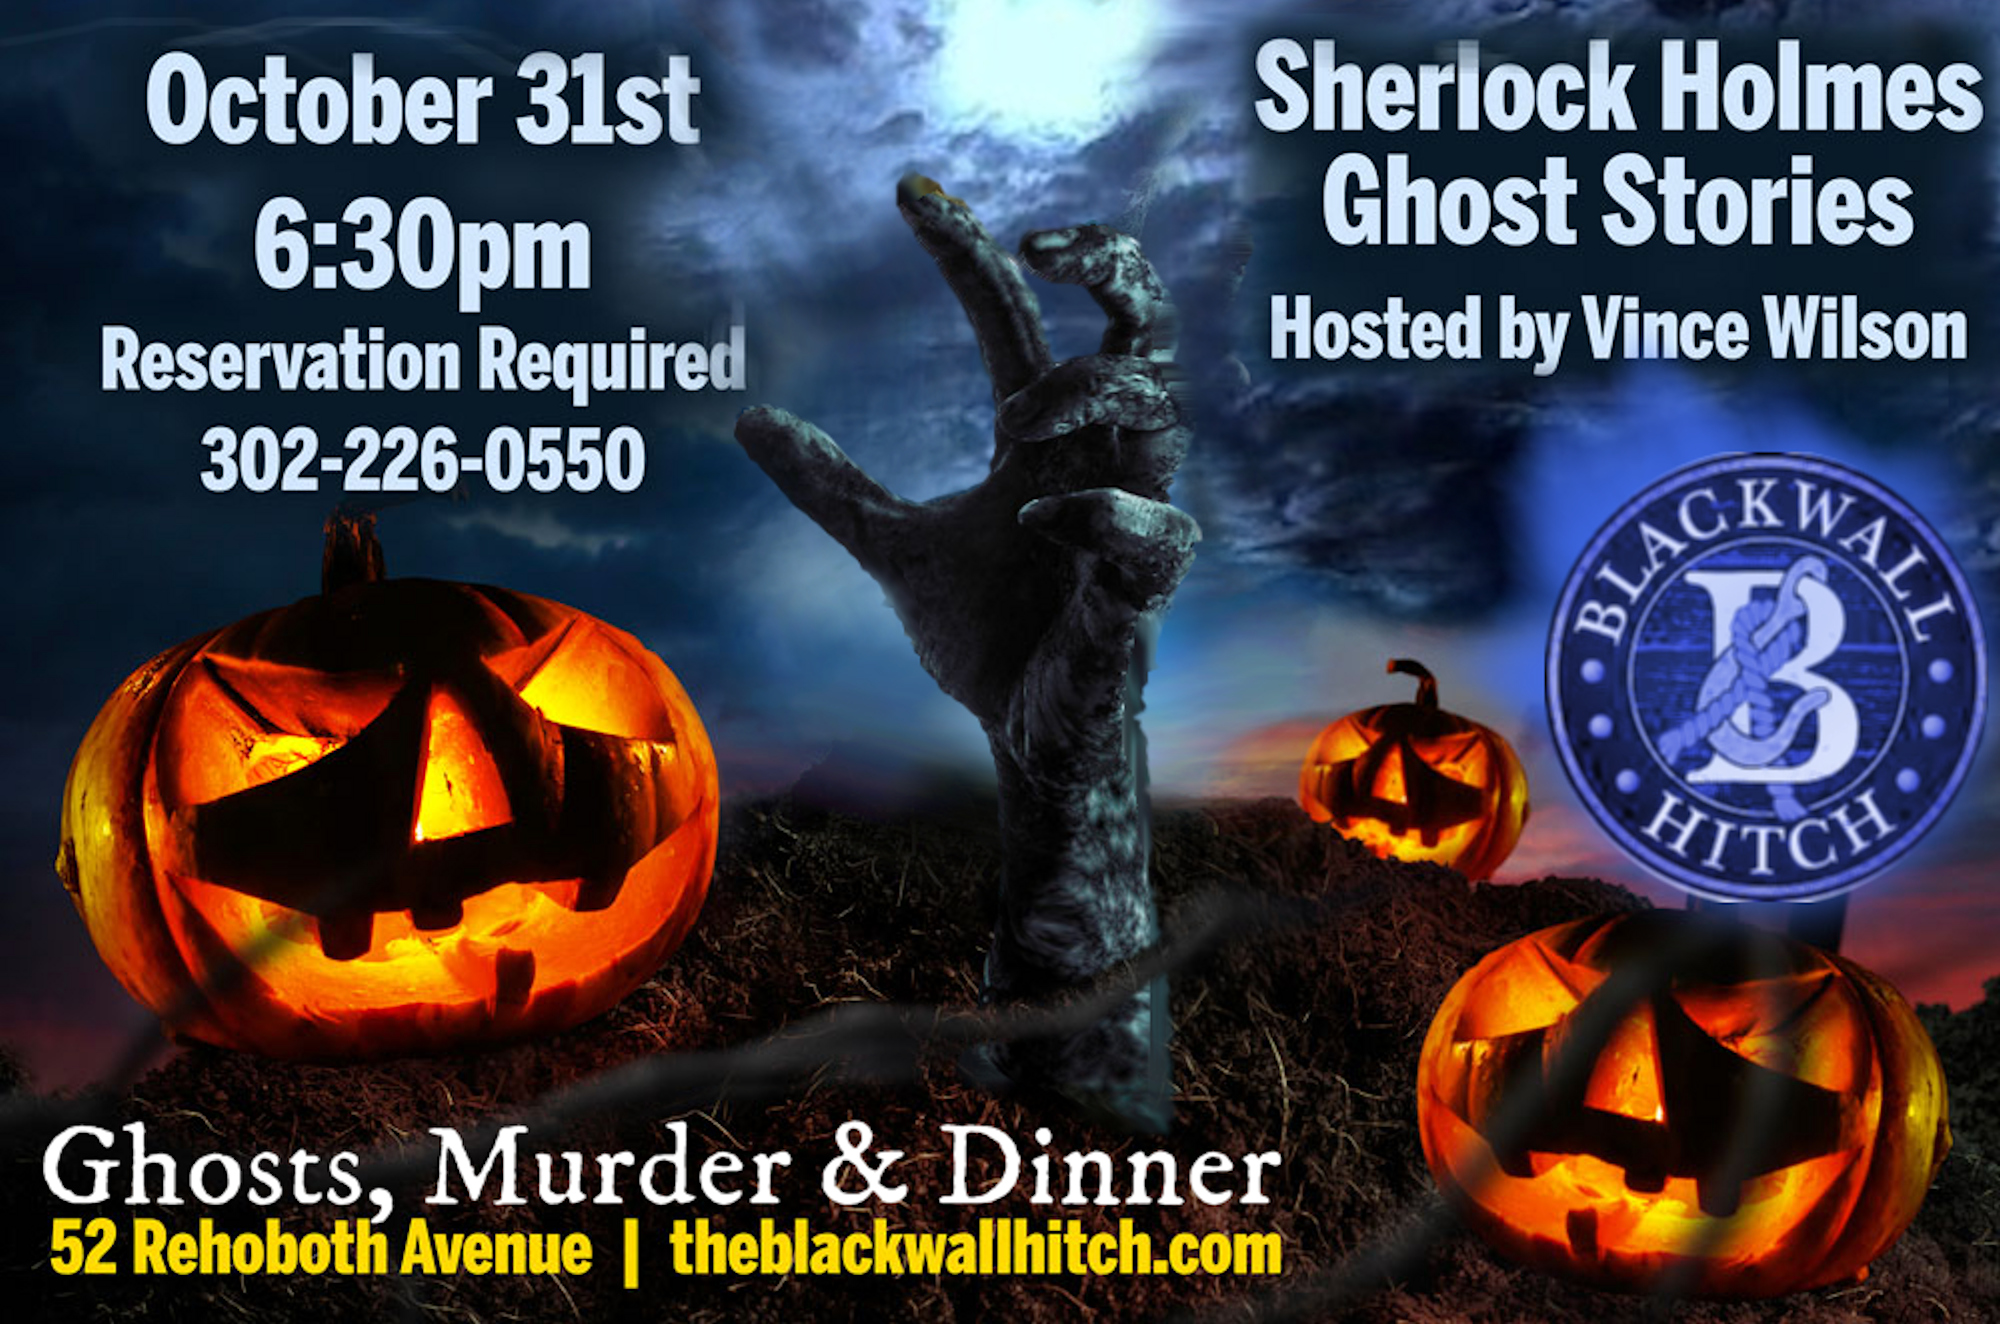 ghosts of sherlock holmes at blackwall hitch - magic and murder